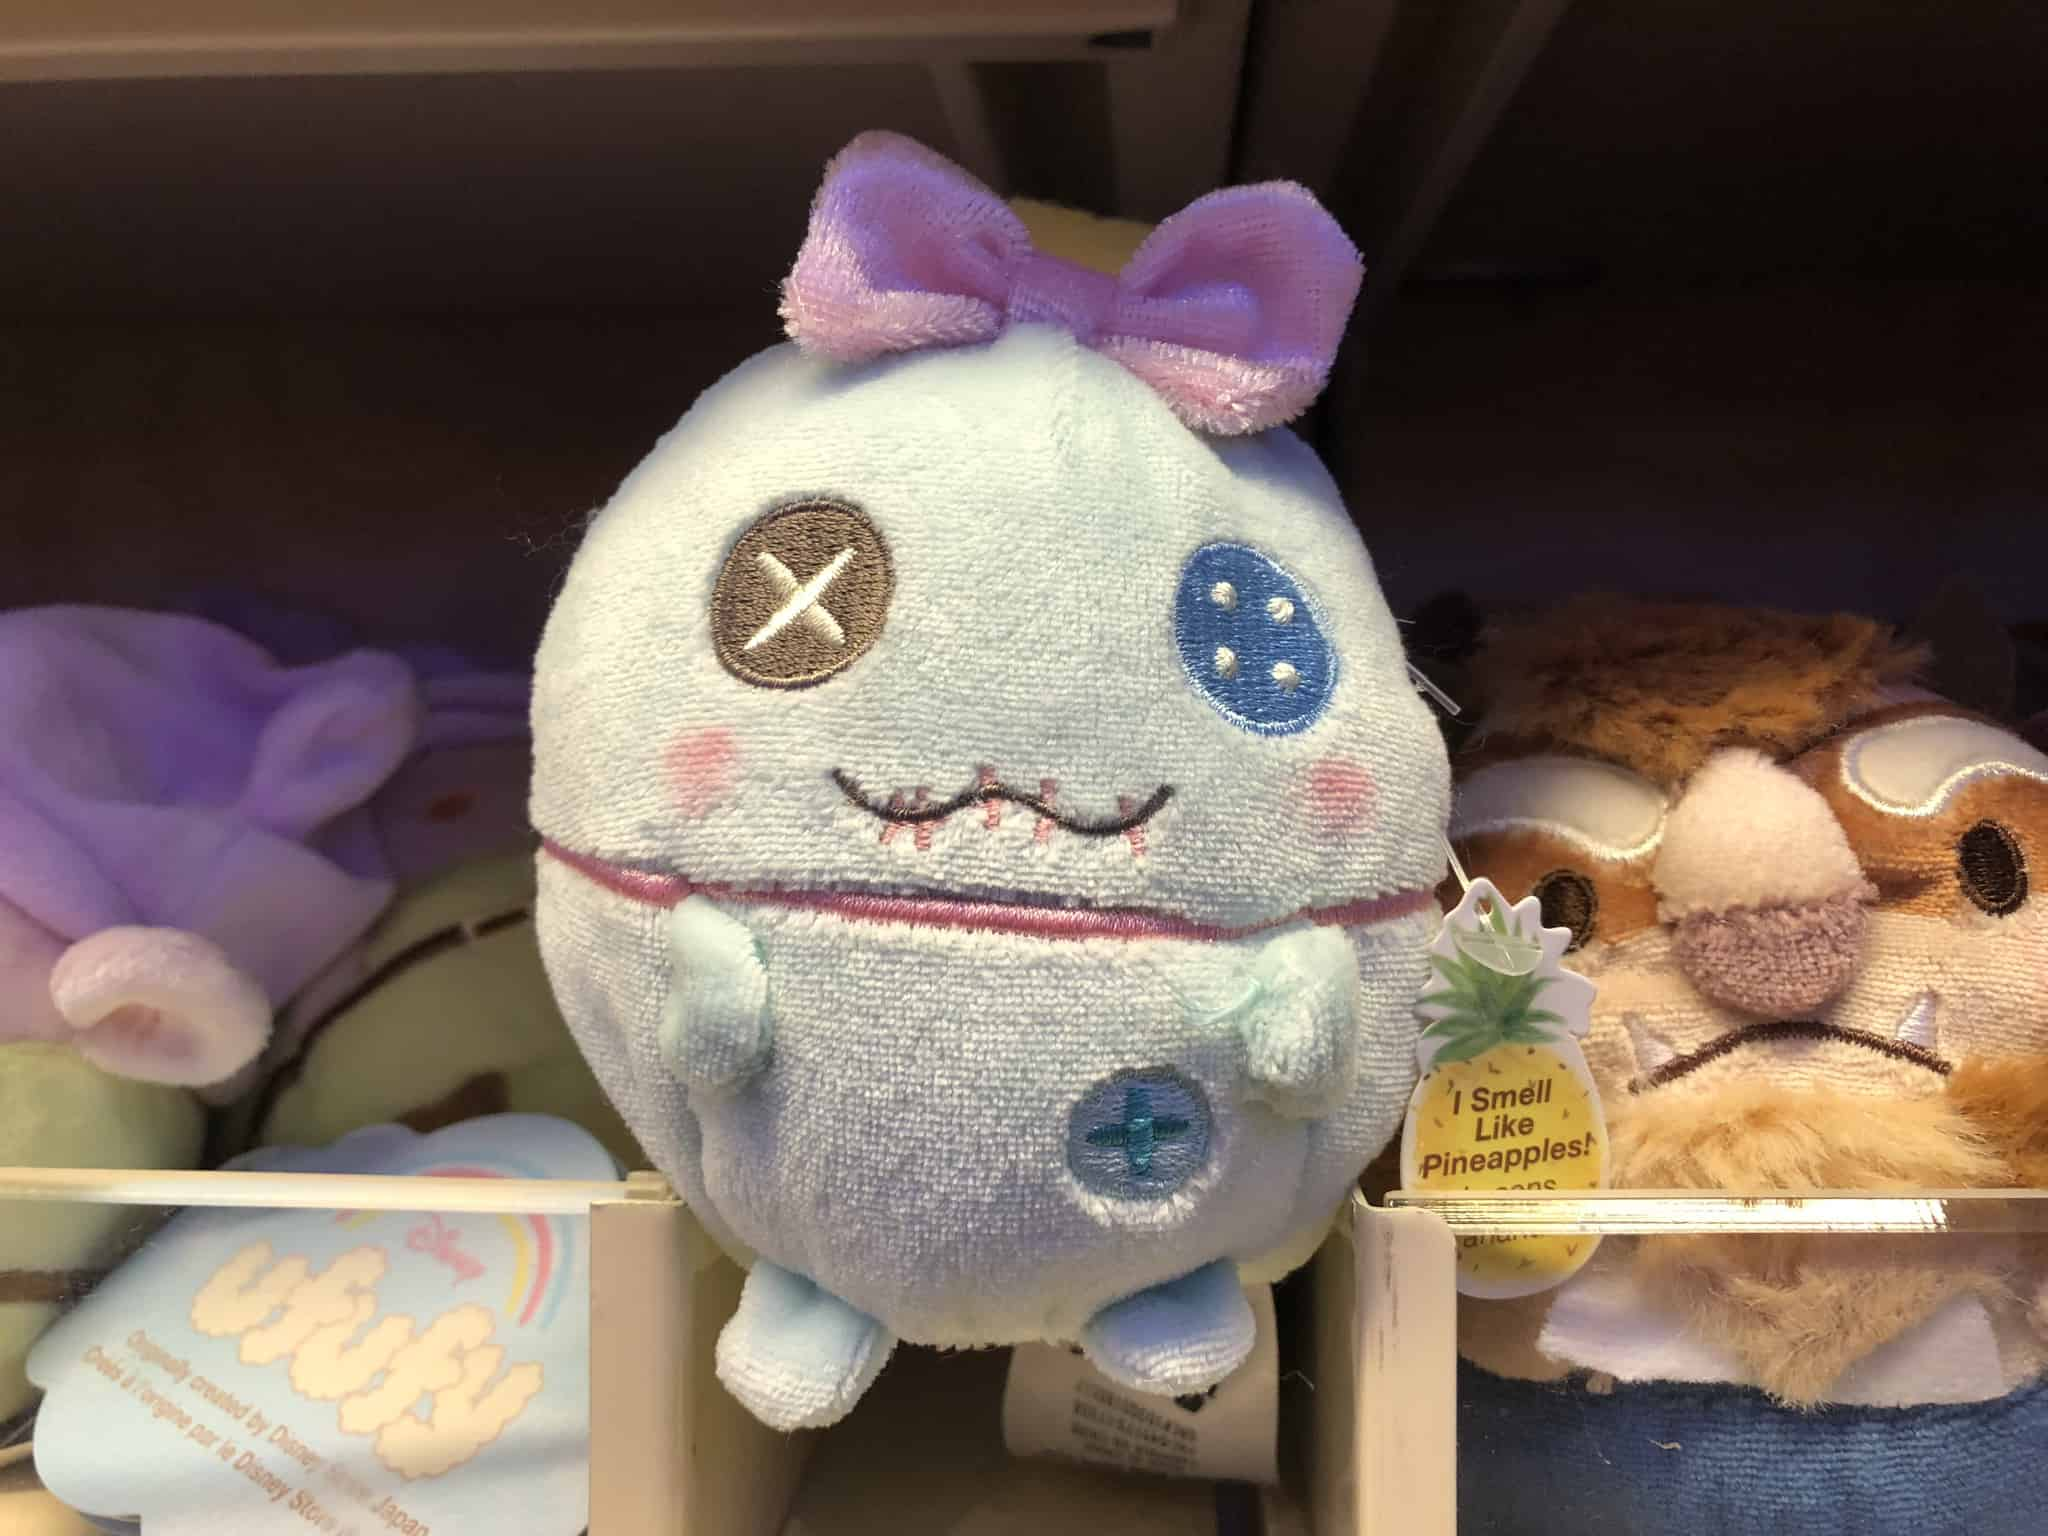 """A new plush Ufufy Scrump from """"Lilo and Stitch"""" is available at Disneyland as of May 4, 2018"""